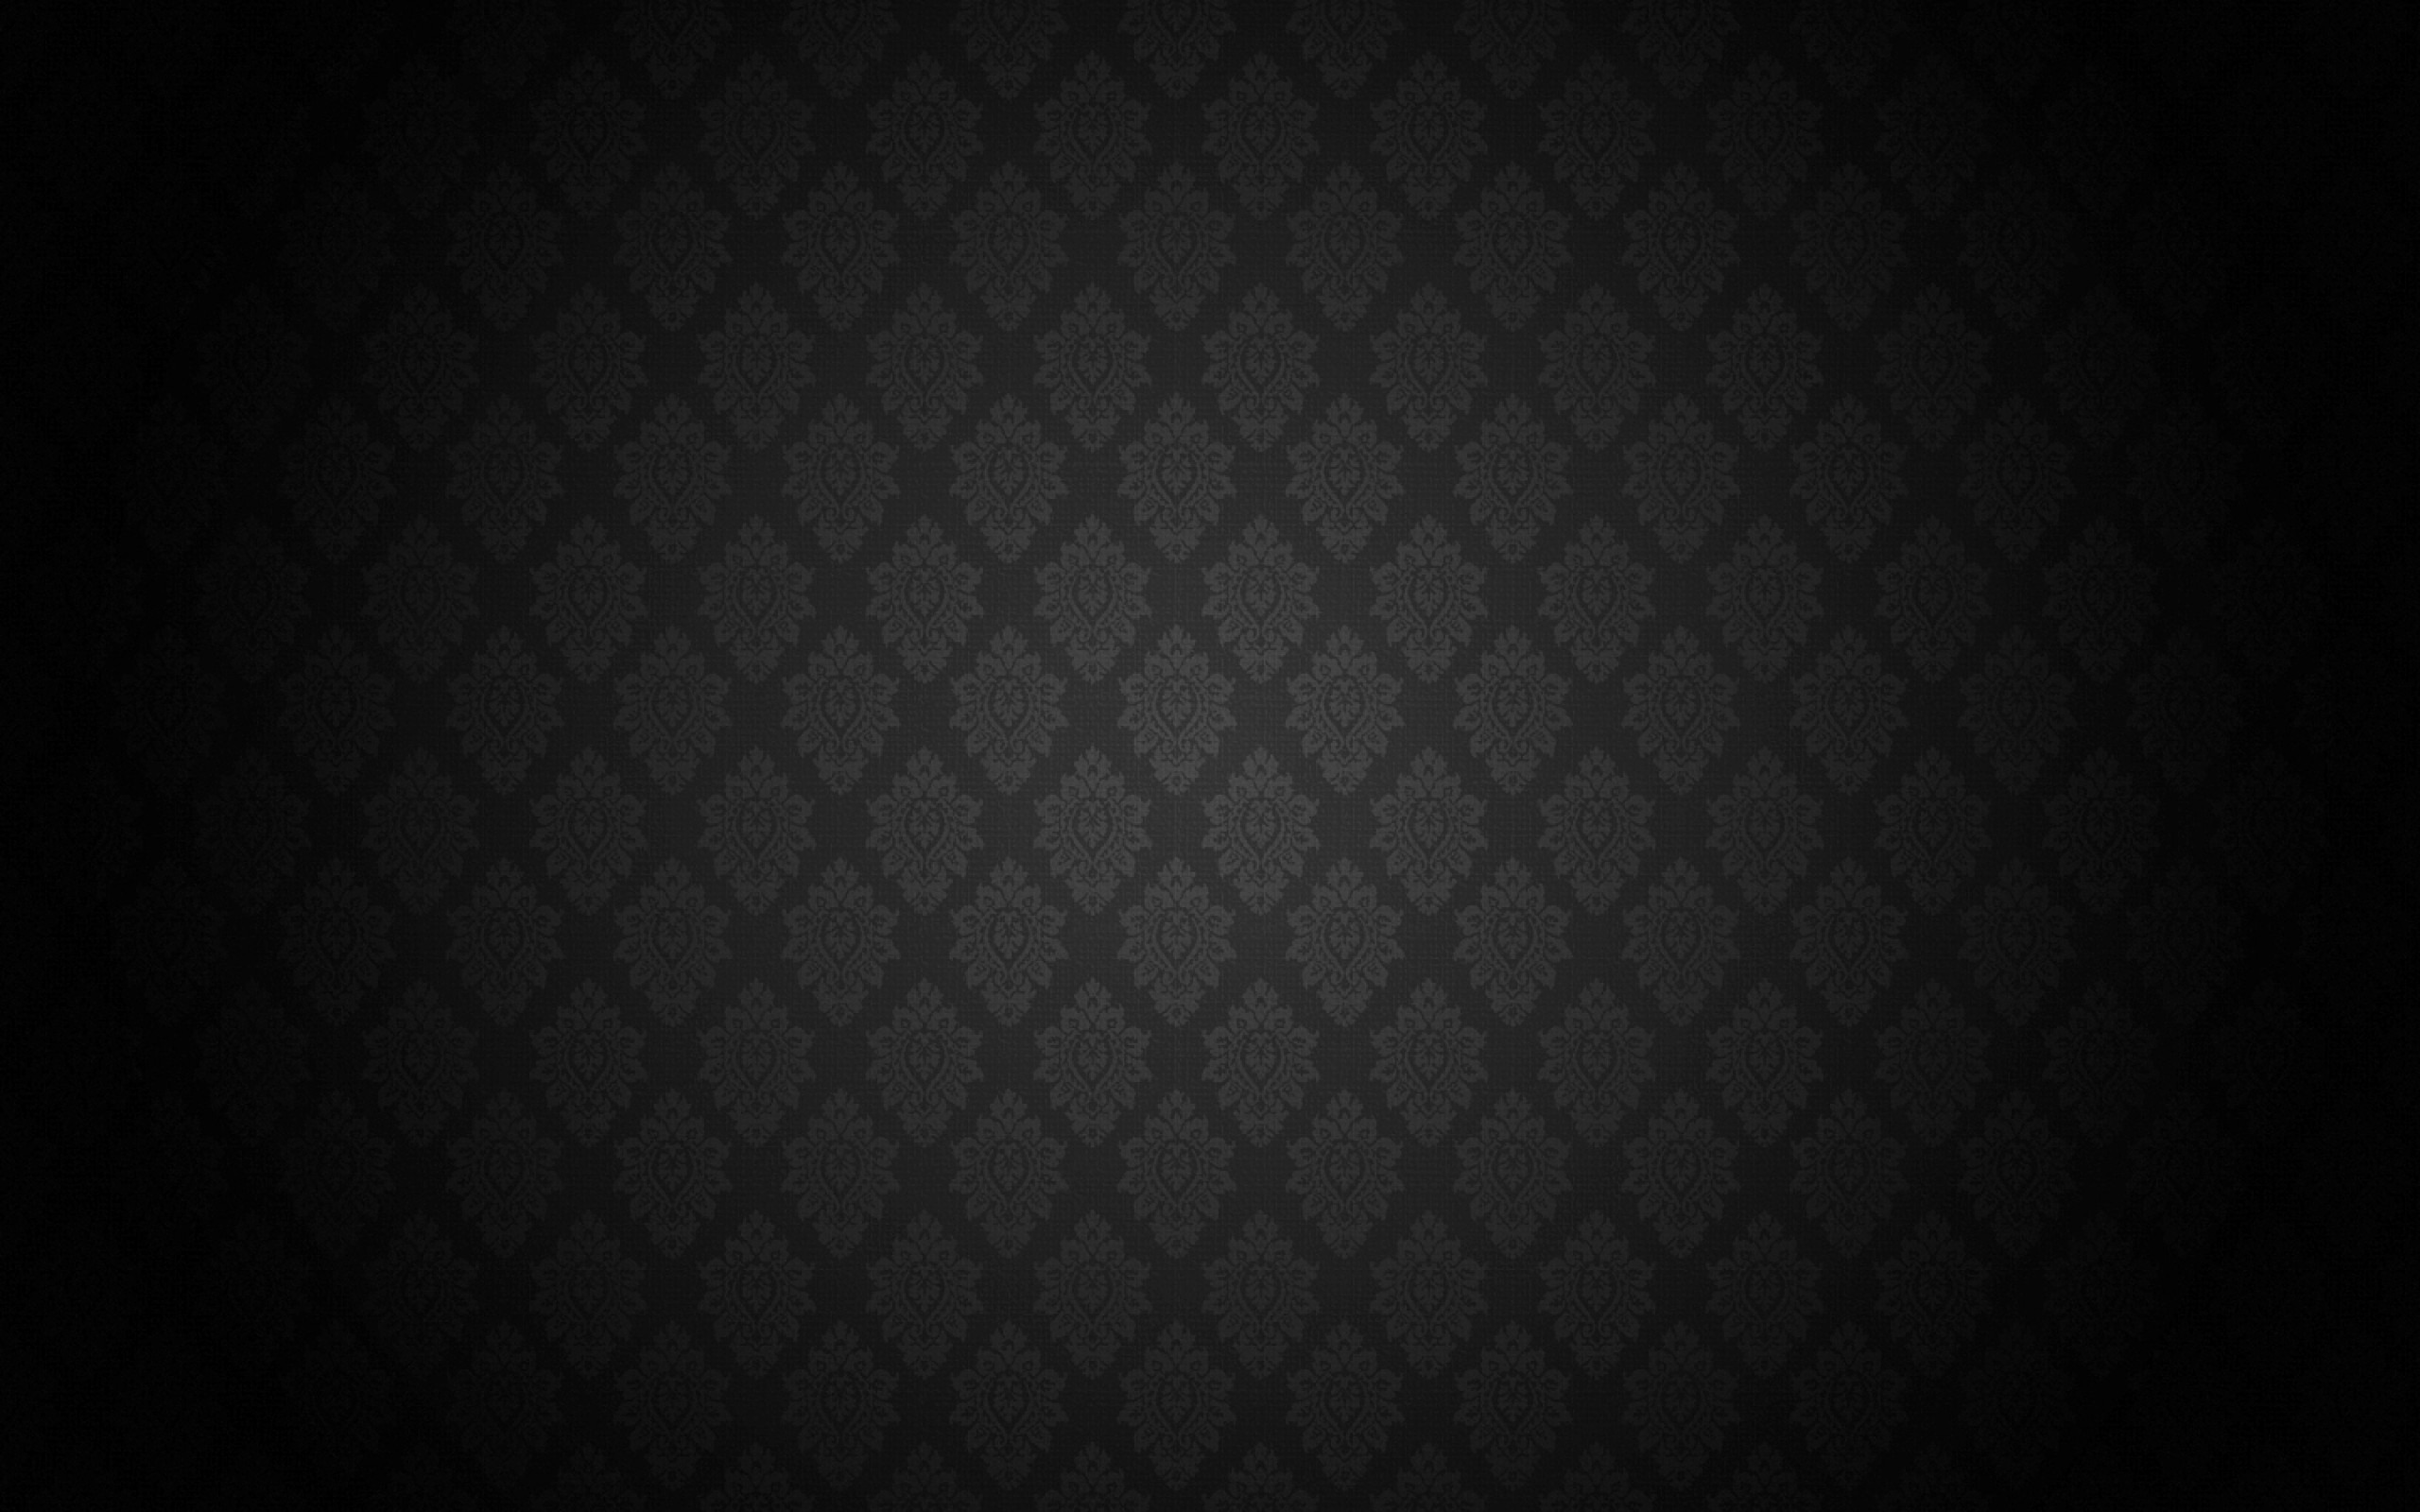 Black and White Pattern Background wallpaper Black and White Pattern 2560x1600